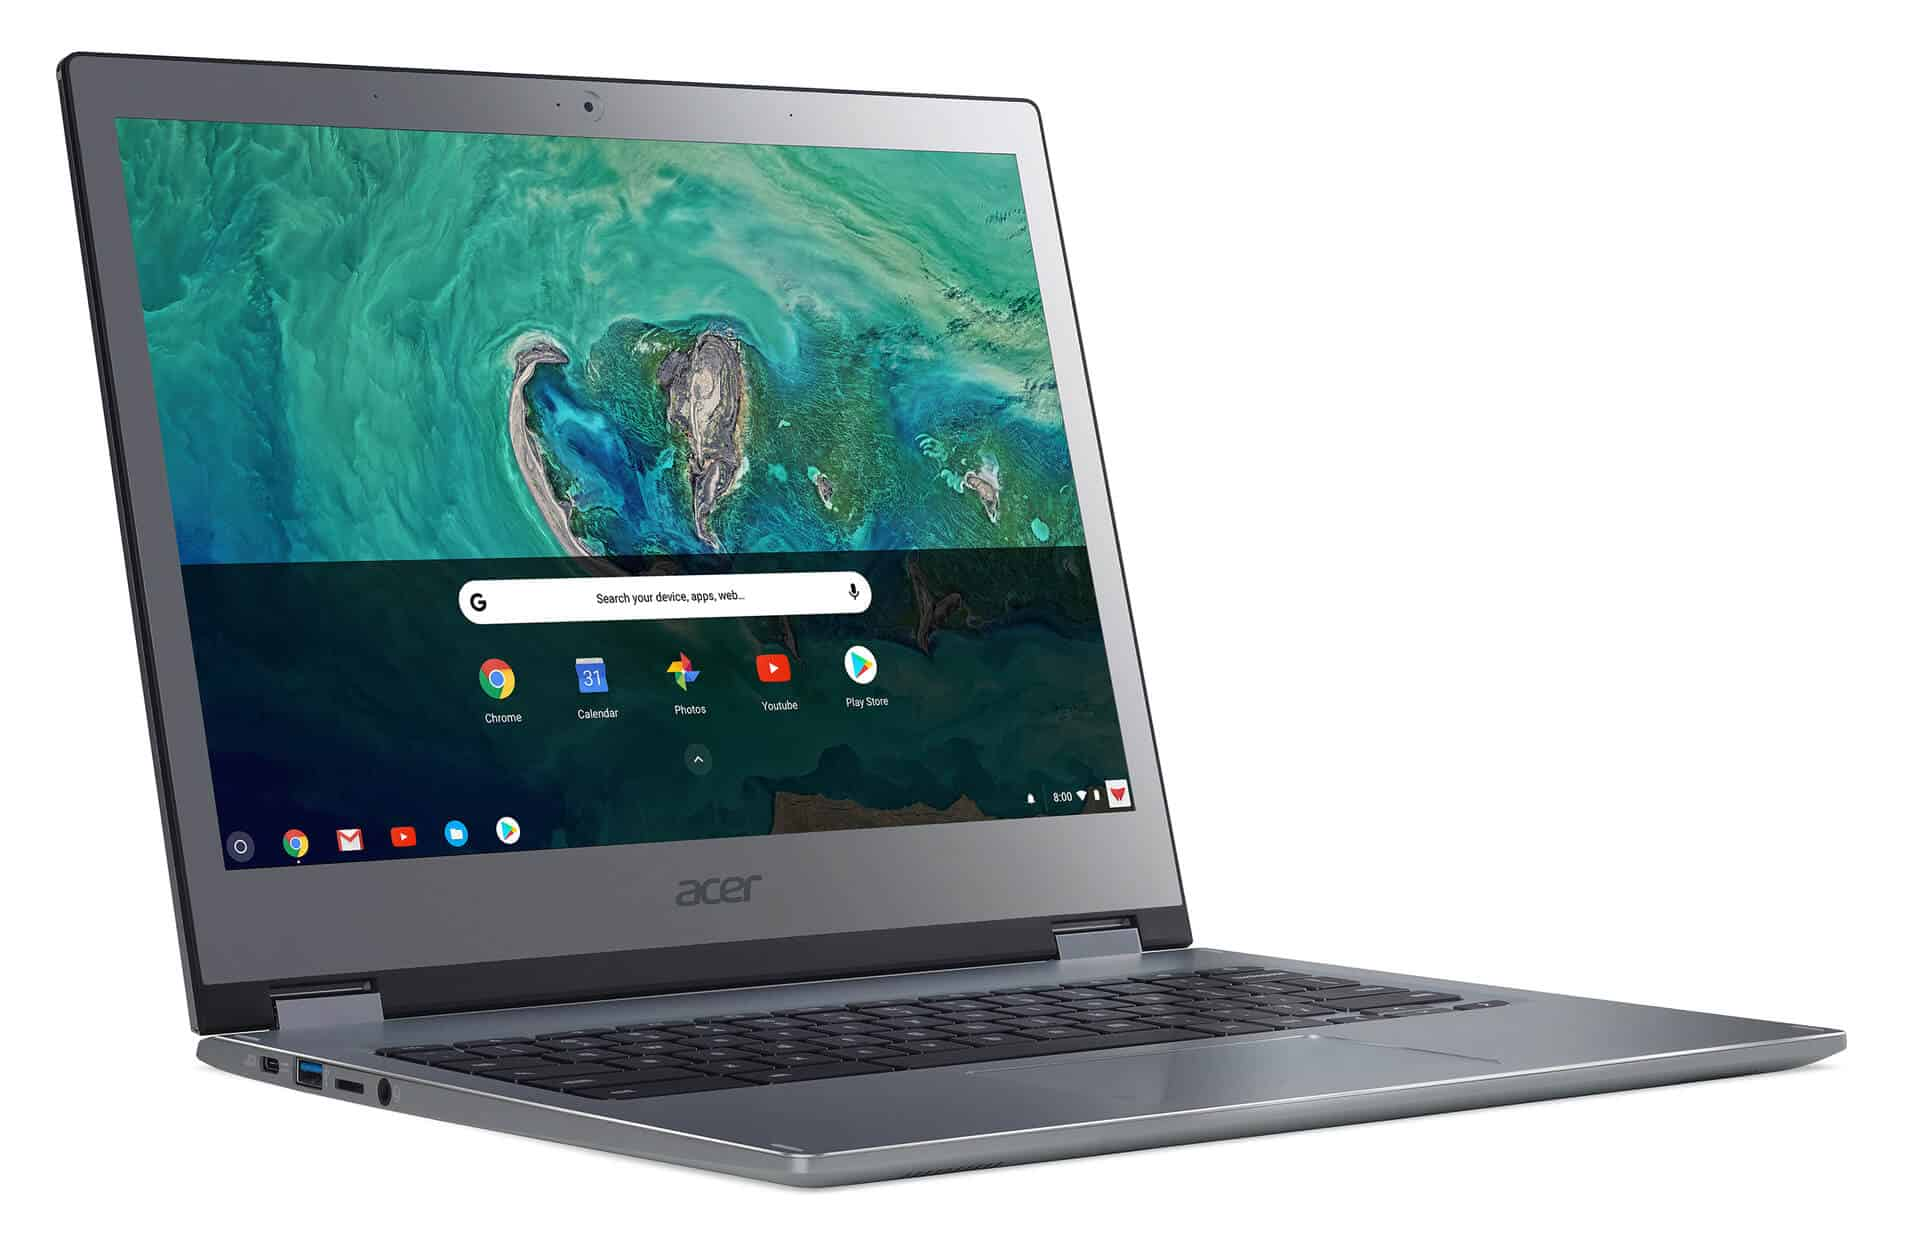 Acer Chromebook 13 right facing from Acer 06